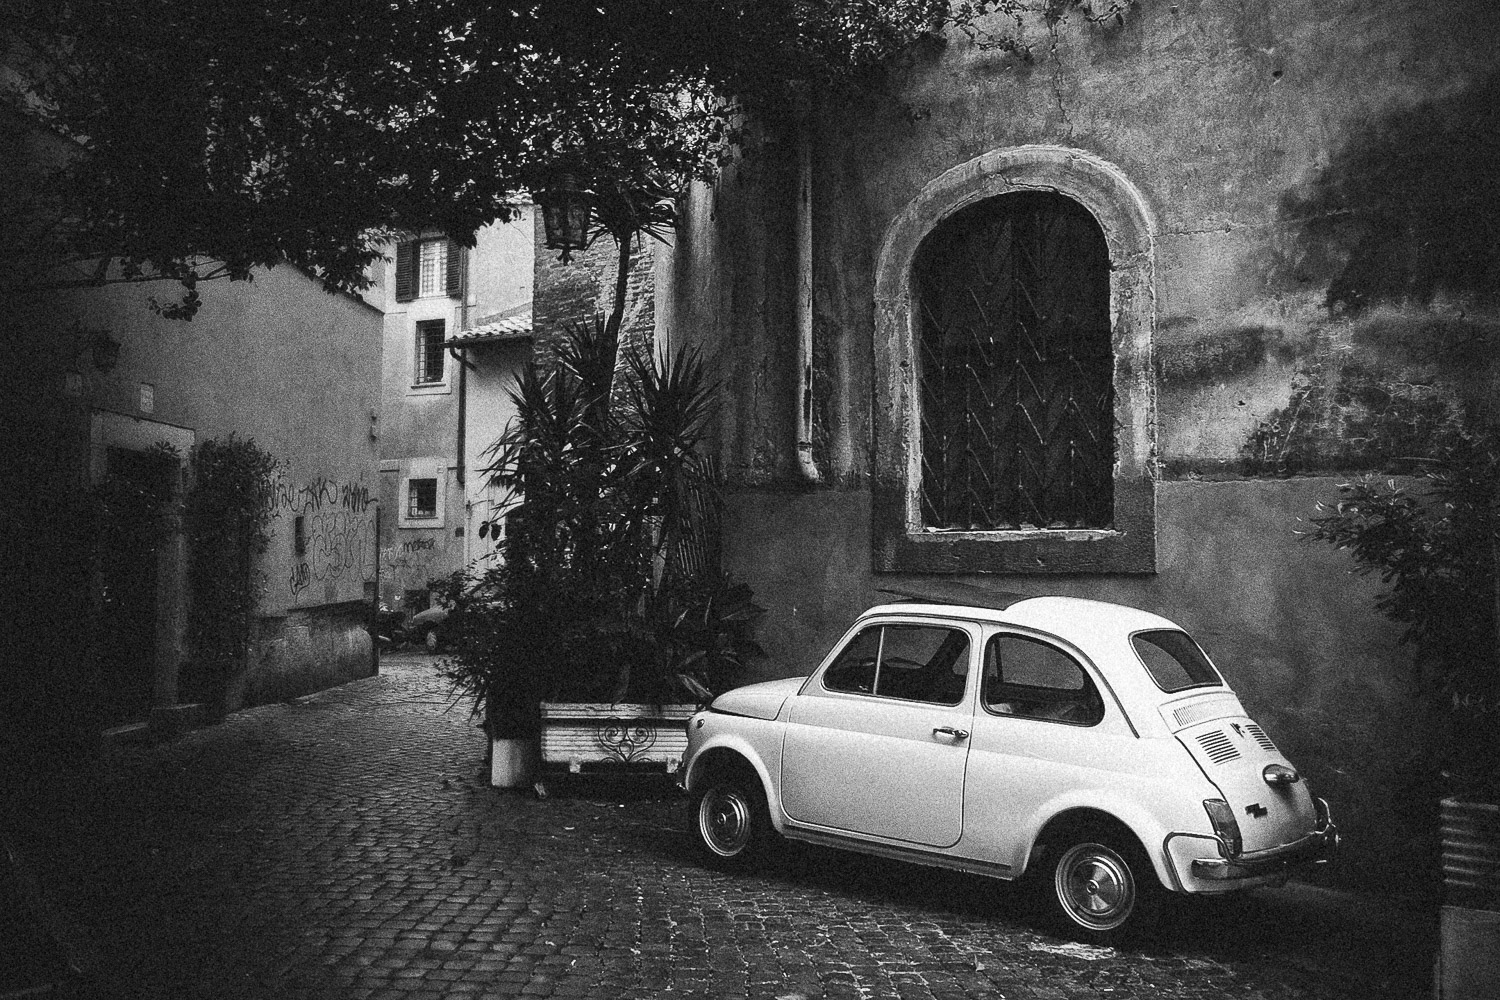 Rome, Italy, travel photography that takes you places!